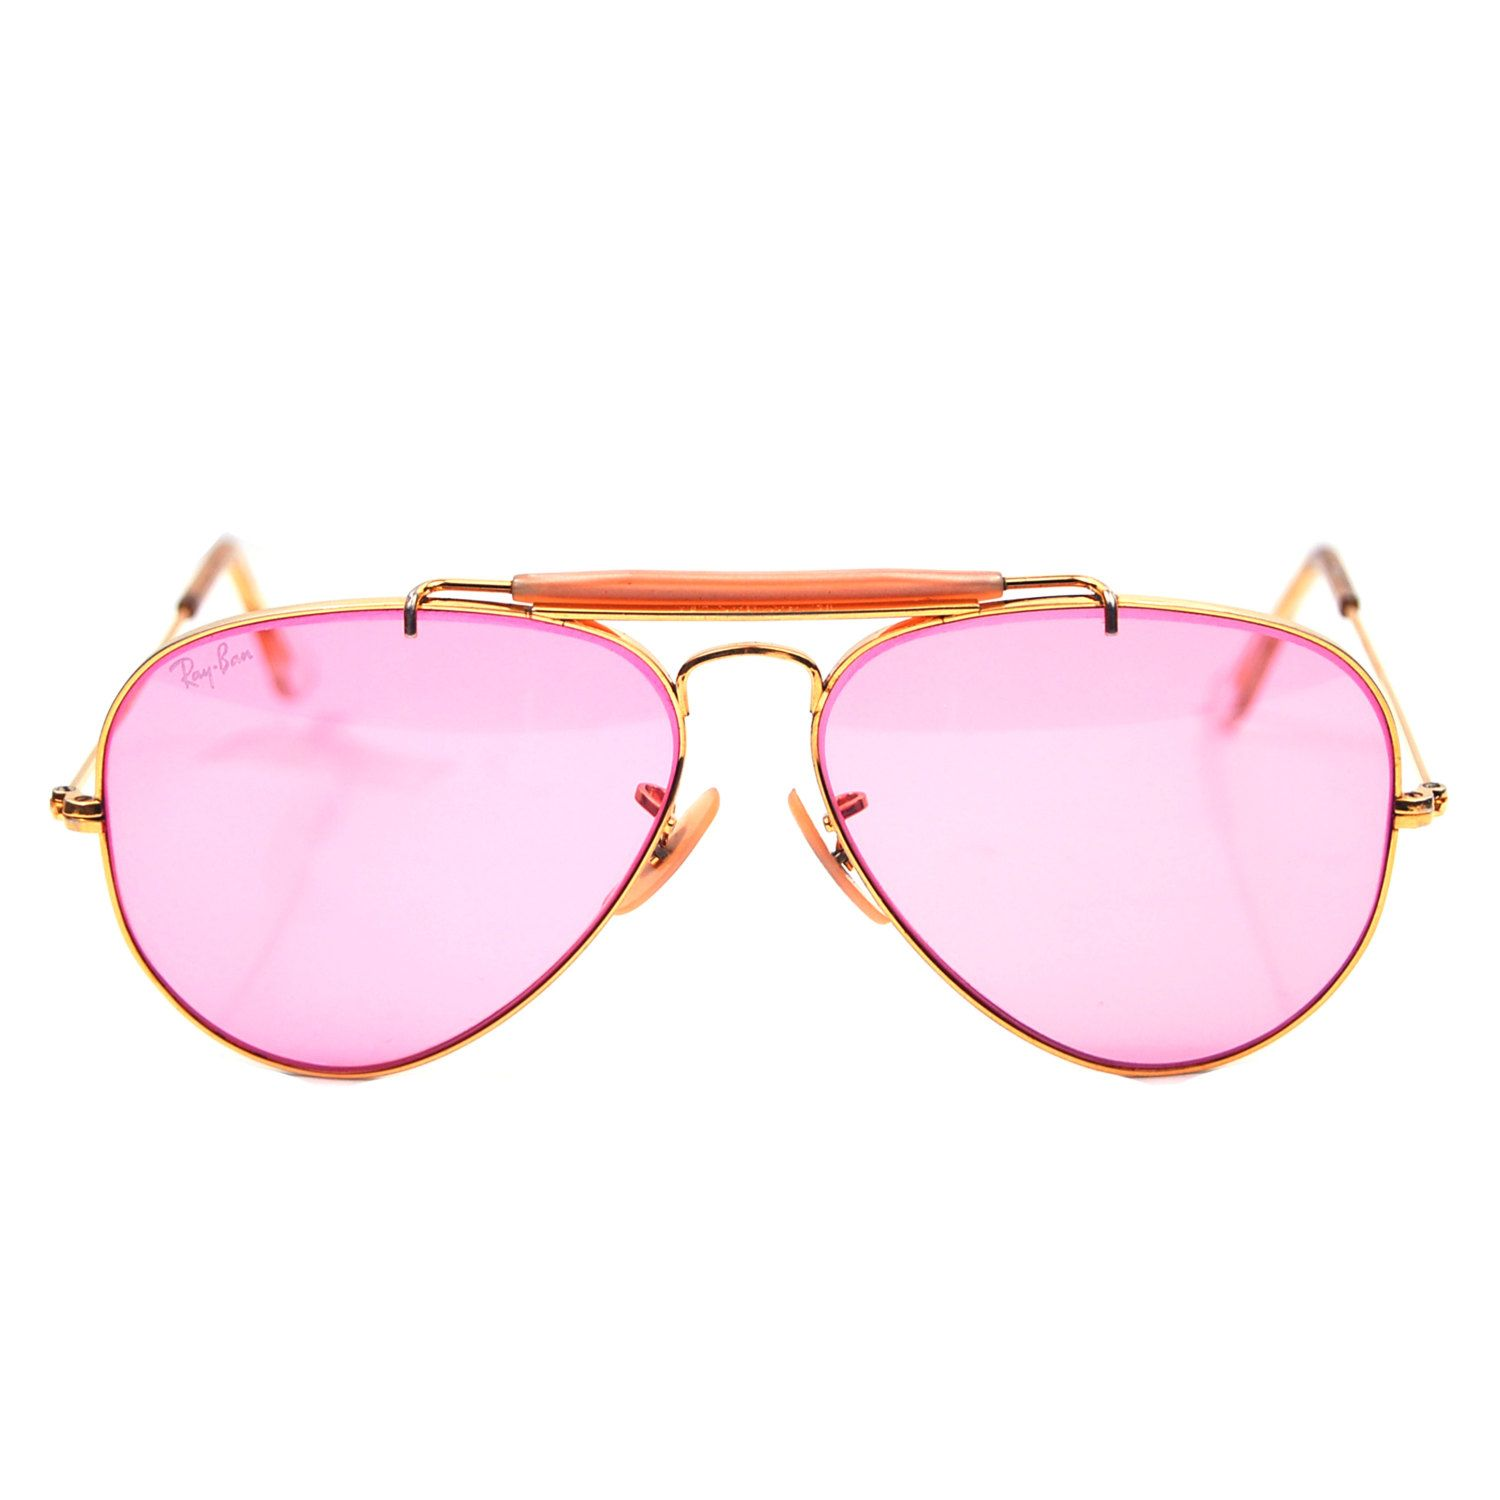 ca91eb648442 Vintage Ray Ban Bausch and Lomb Pink Rose Changeable Sunglasses 58mm.   299.00